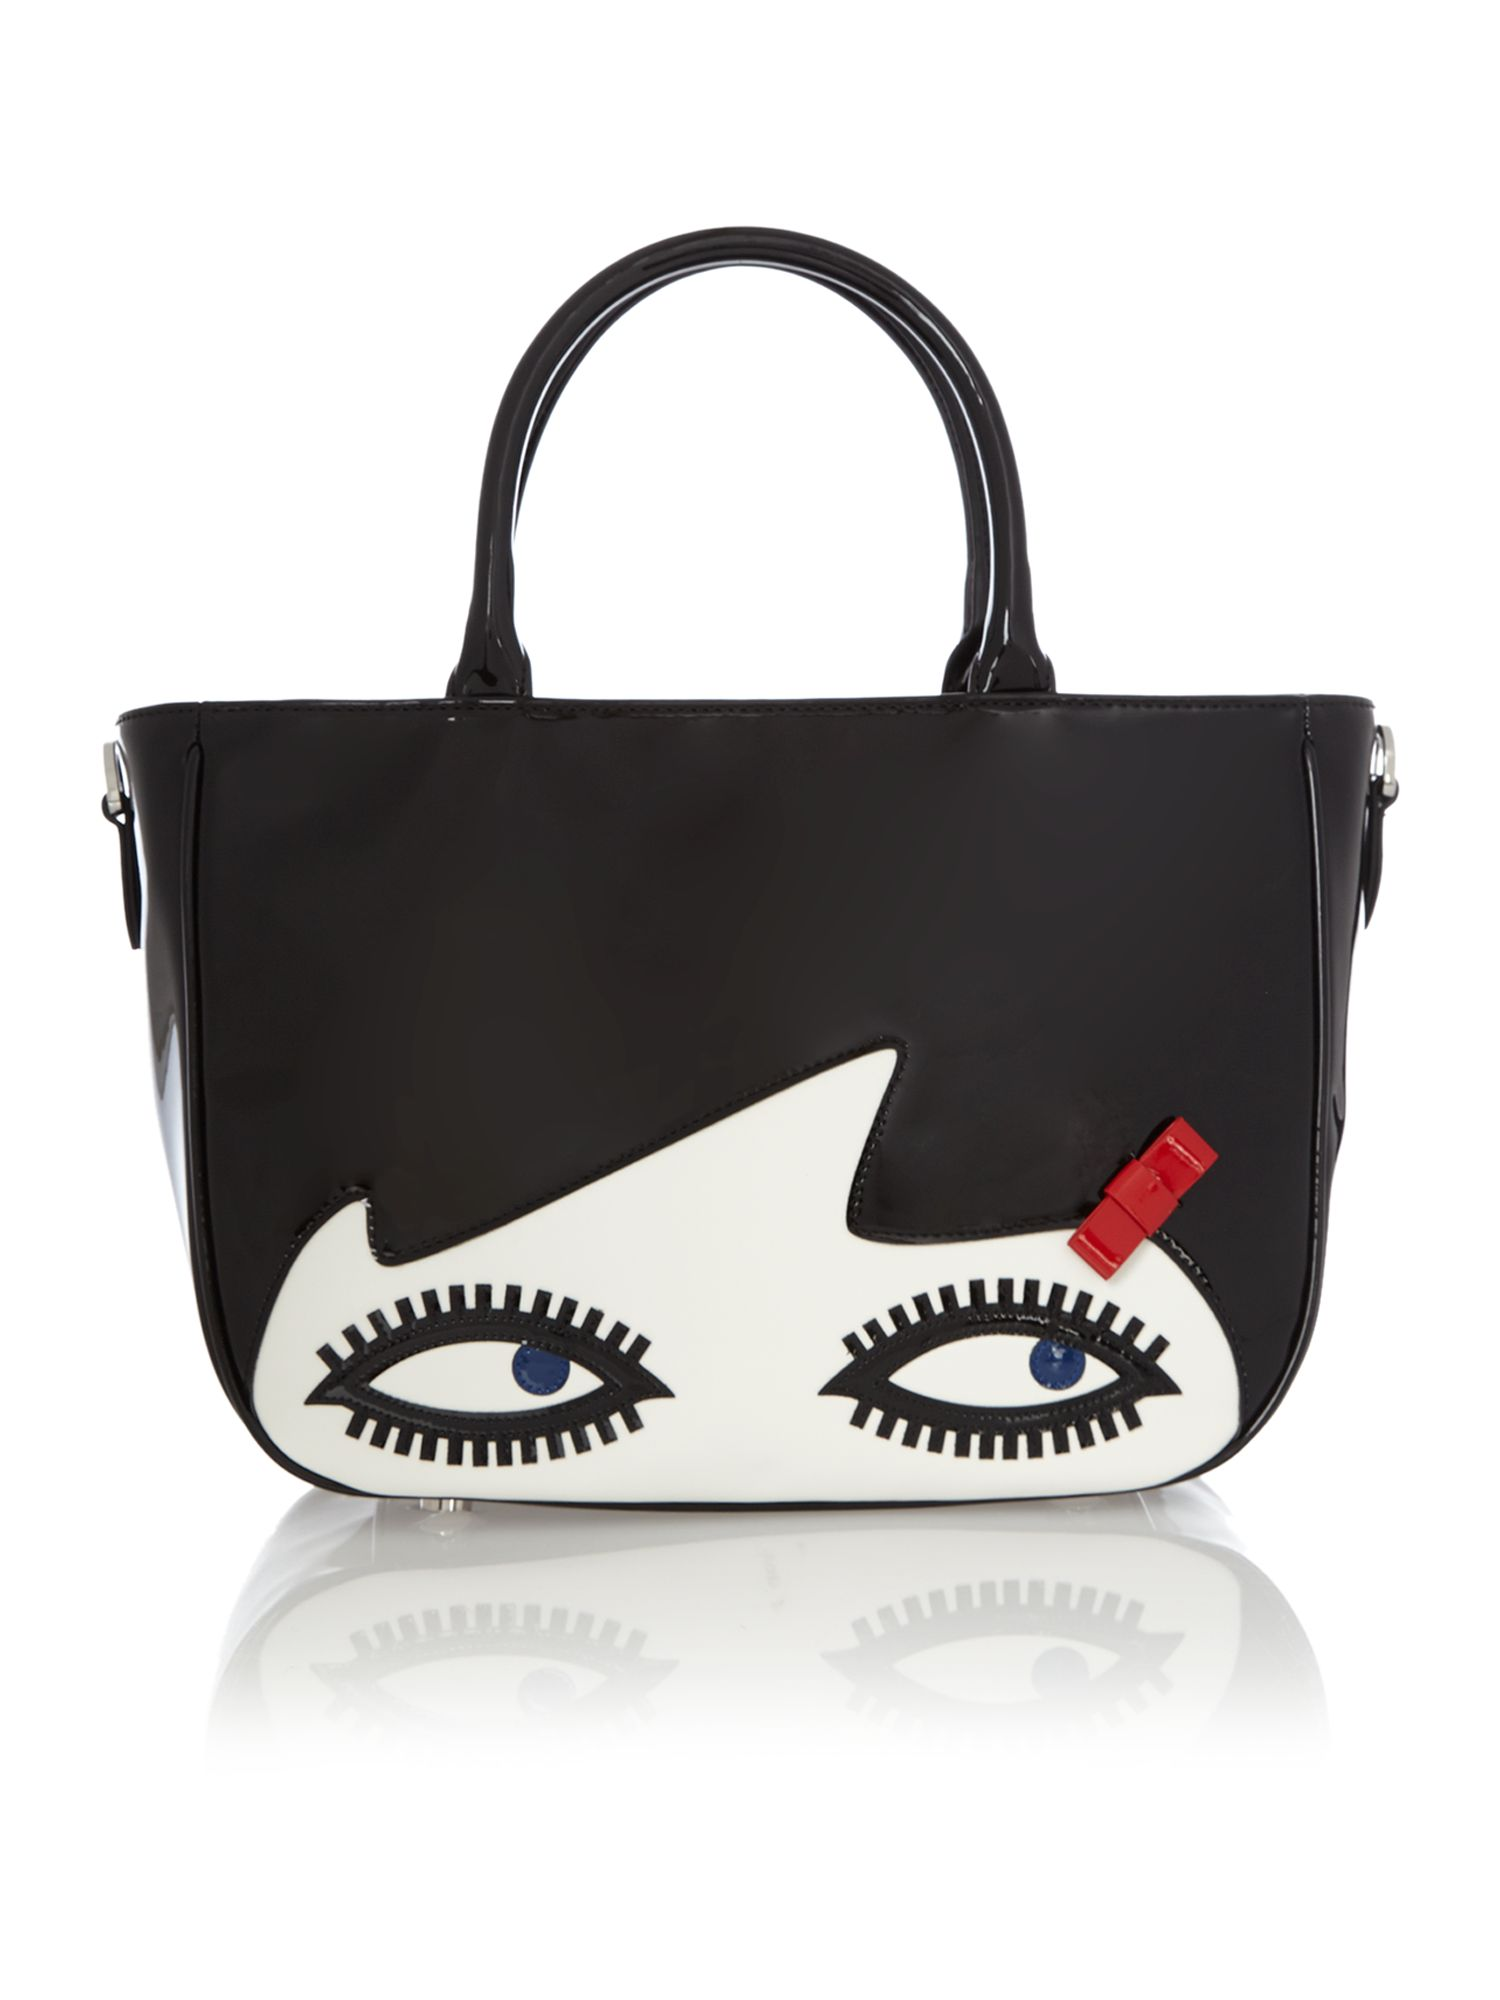 Wanda black small doll face tote bag